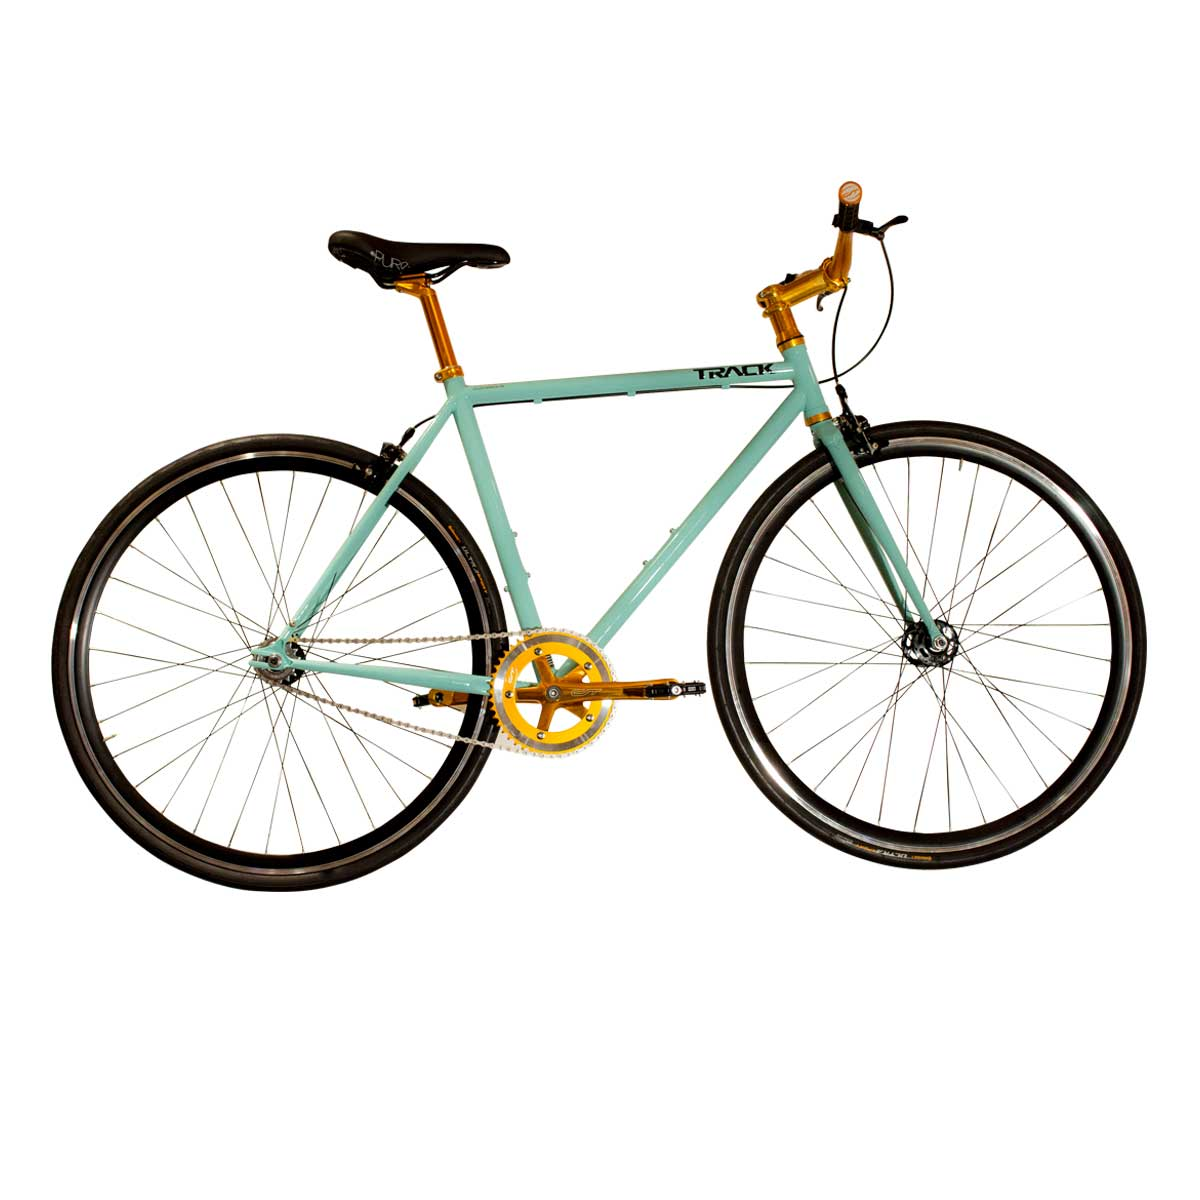 singlespeed fixie follow me bike snowsports. Black Bedroom Furniture Sets. Home Design Ideas